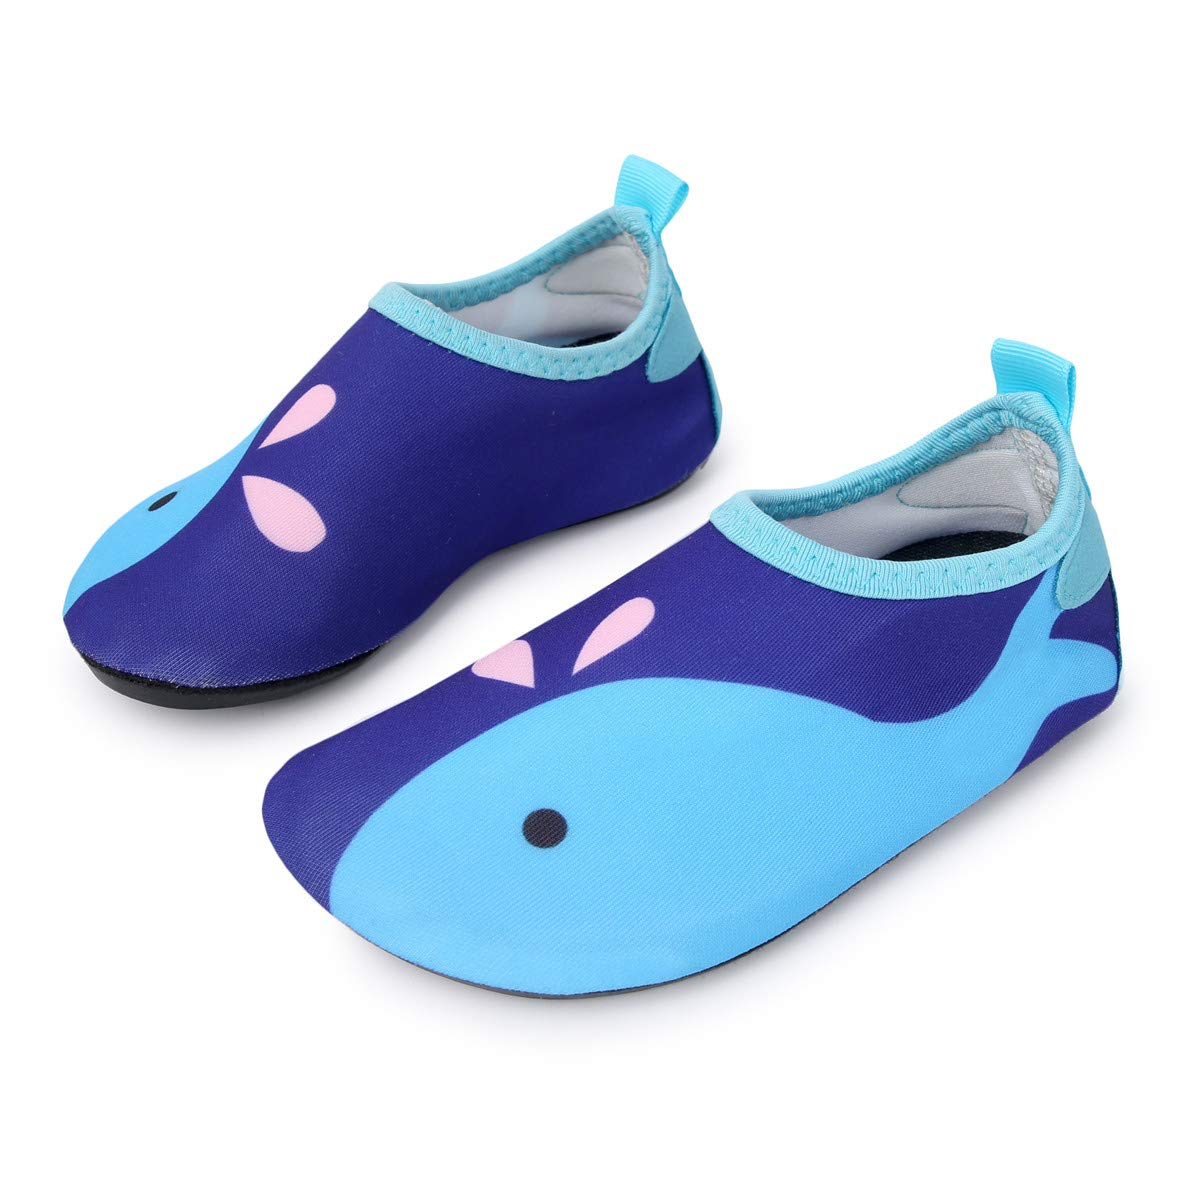 L-RUN Boys Lightweight Water Shoes Soft Quick-Dry Aqua Socks Navy 3-4=EU18-19